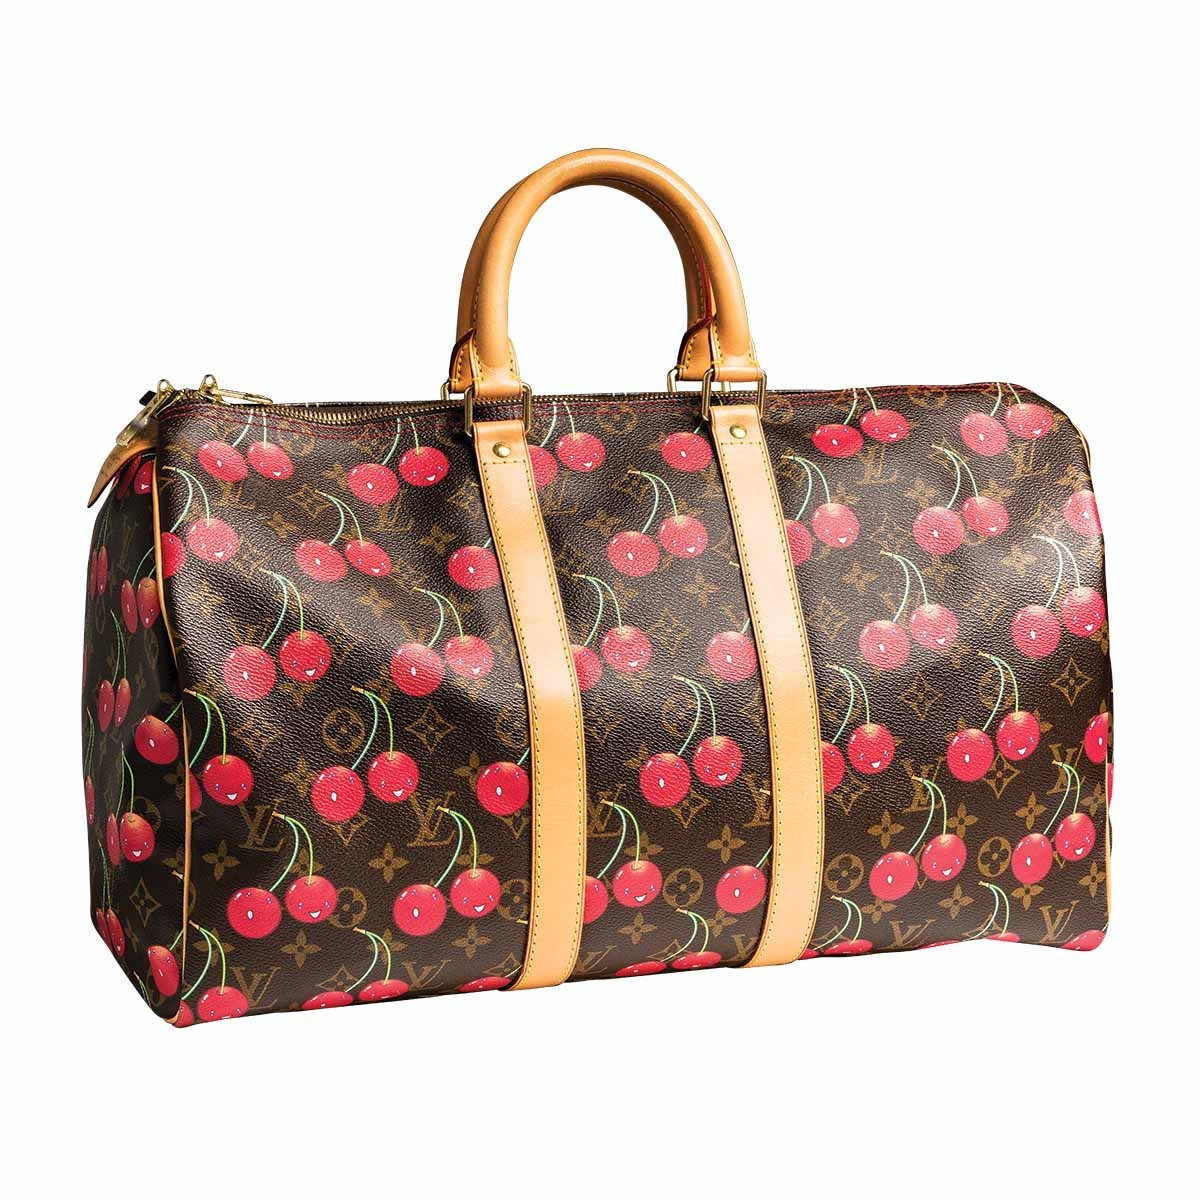 30a8861eb183 Vintage Louis Vuitton Cherry Limited Edition Murukami Cerise Keepall Travel  Duffle Bag Gallery Image